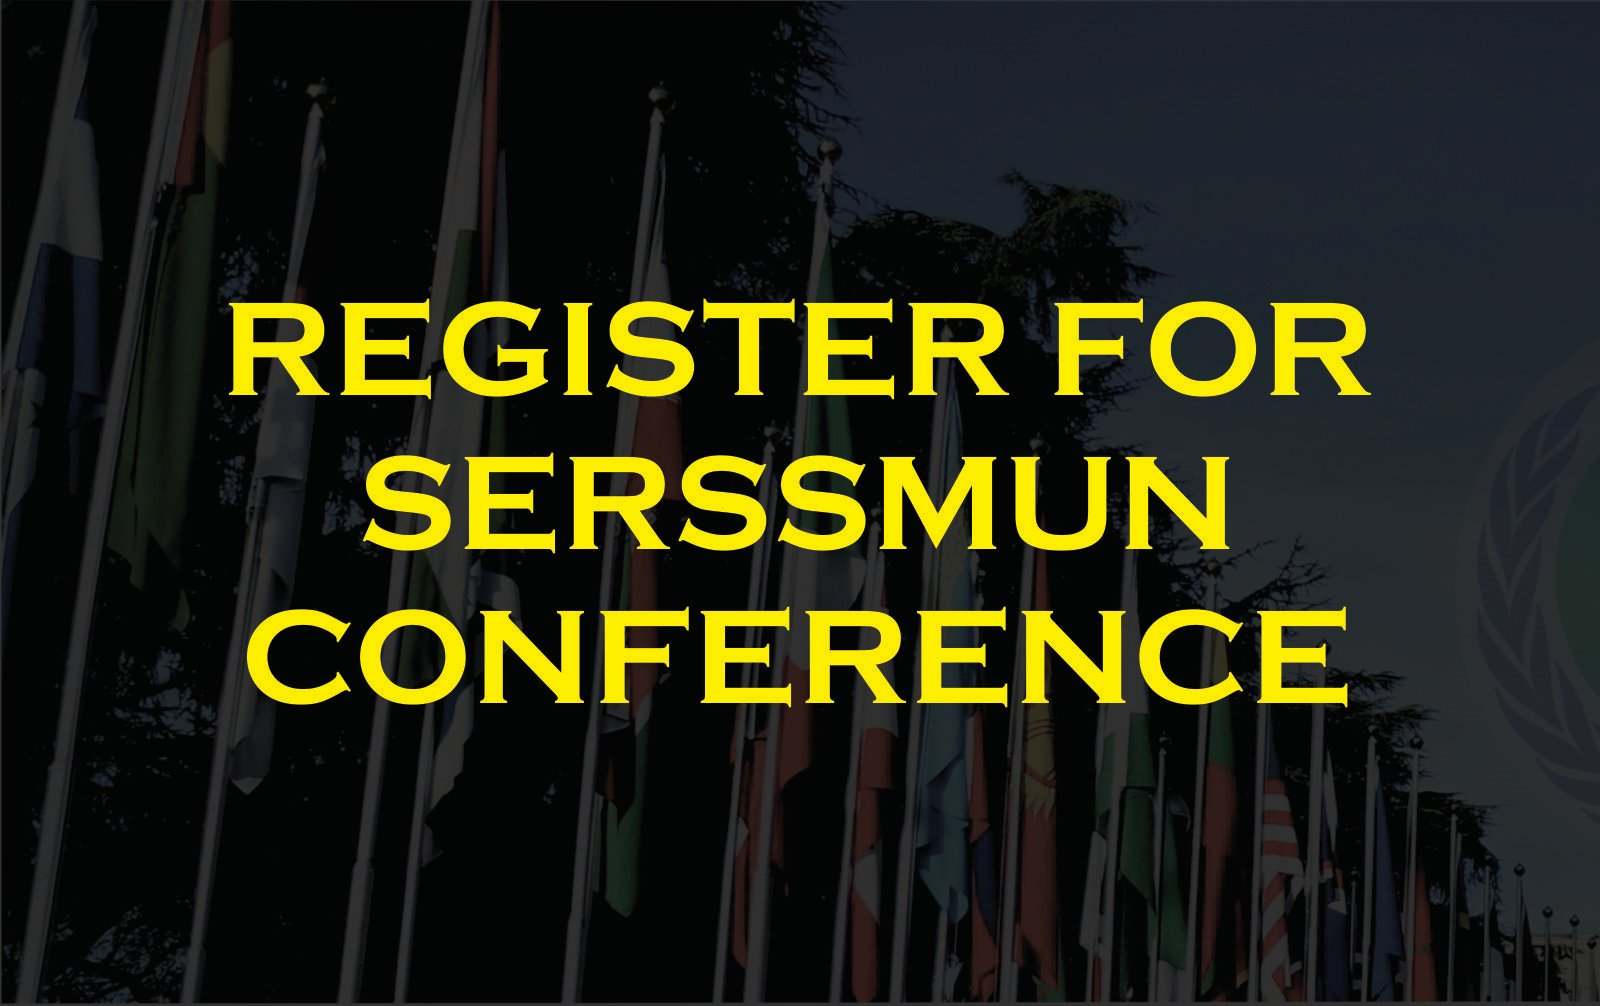 REGISTER FOR SERSSMUN CONFERENCE